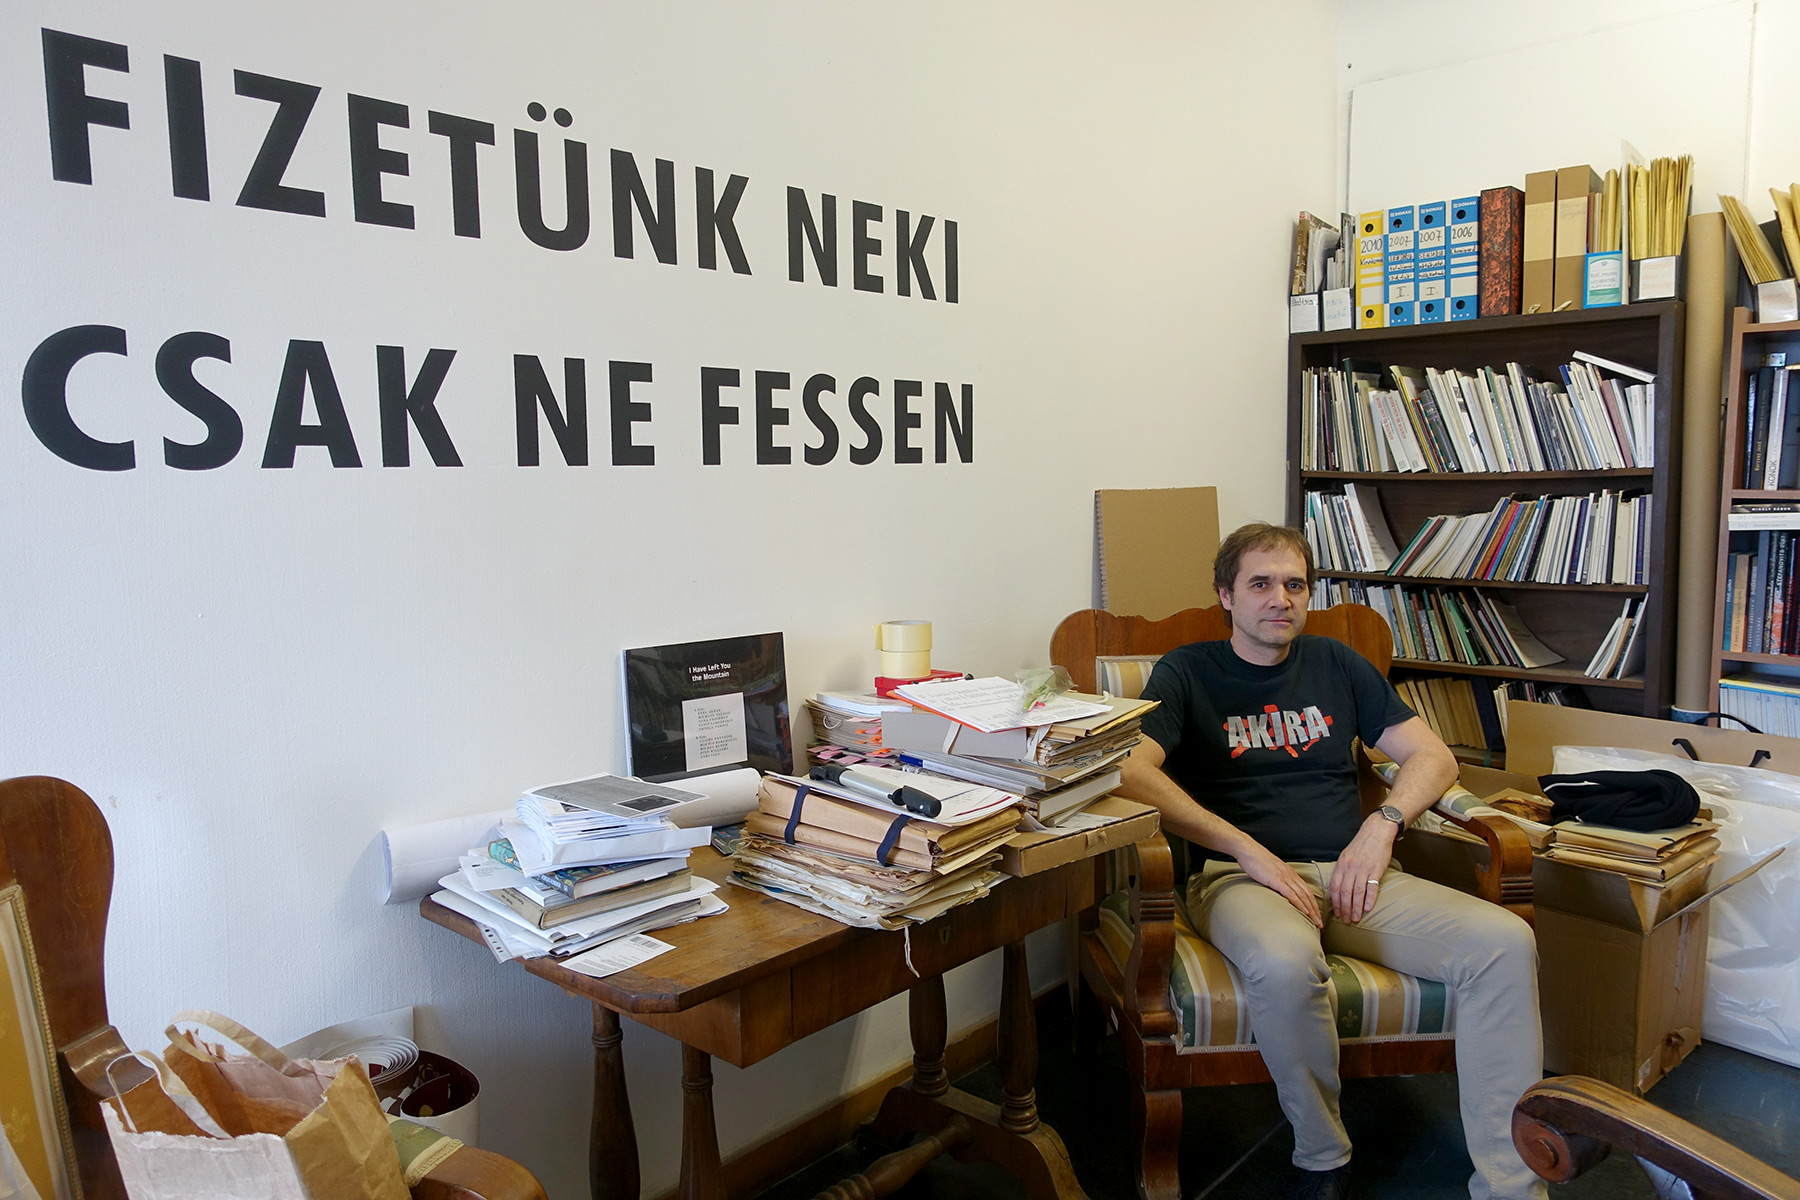 Zsolt Petrányi in his room at the Hungarian National Gallery